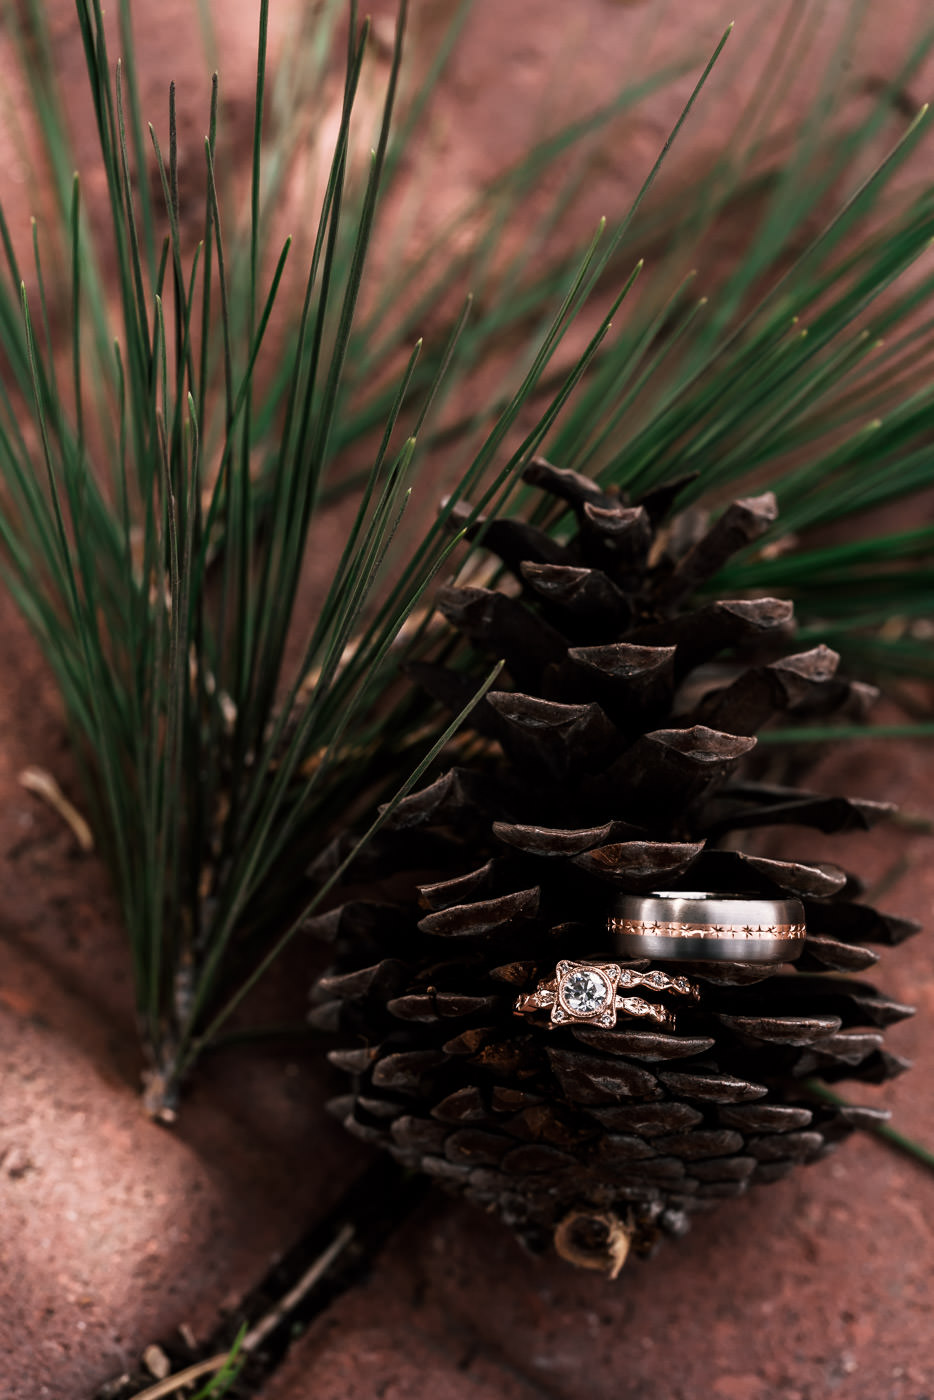 Wedding rings sit in a Pine cone on a brick floor with pine needles.